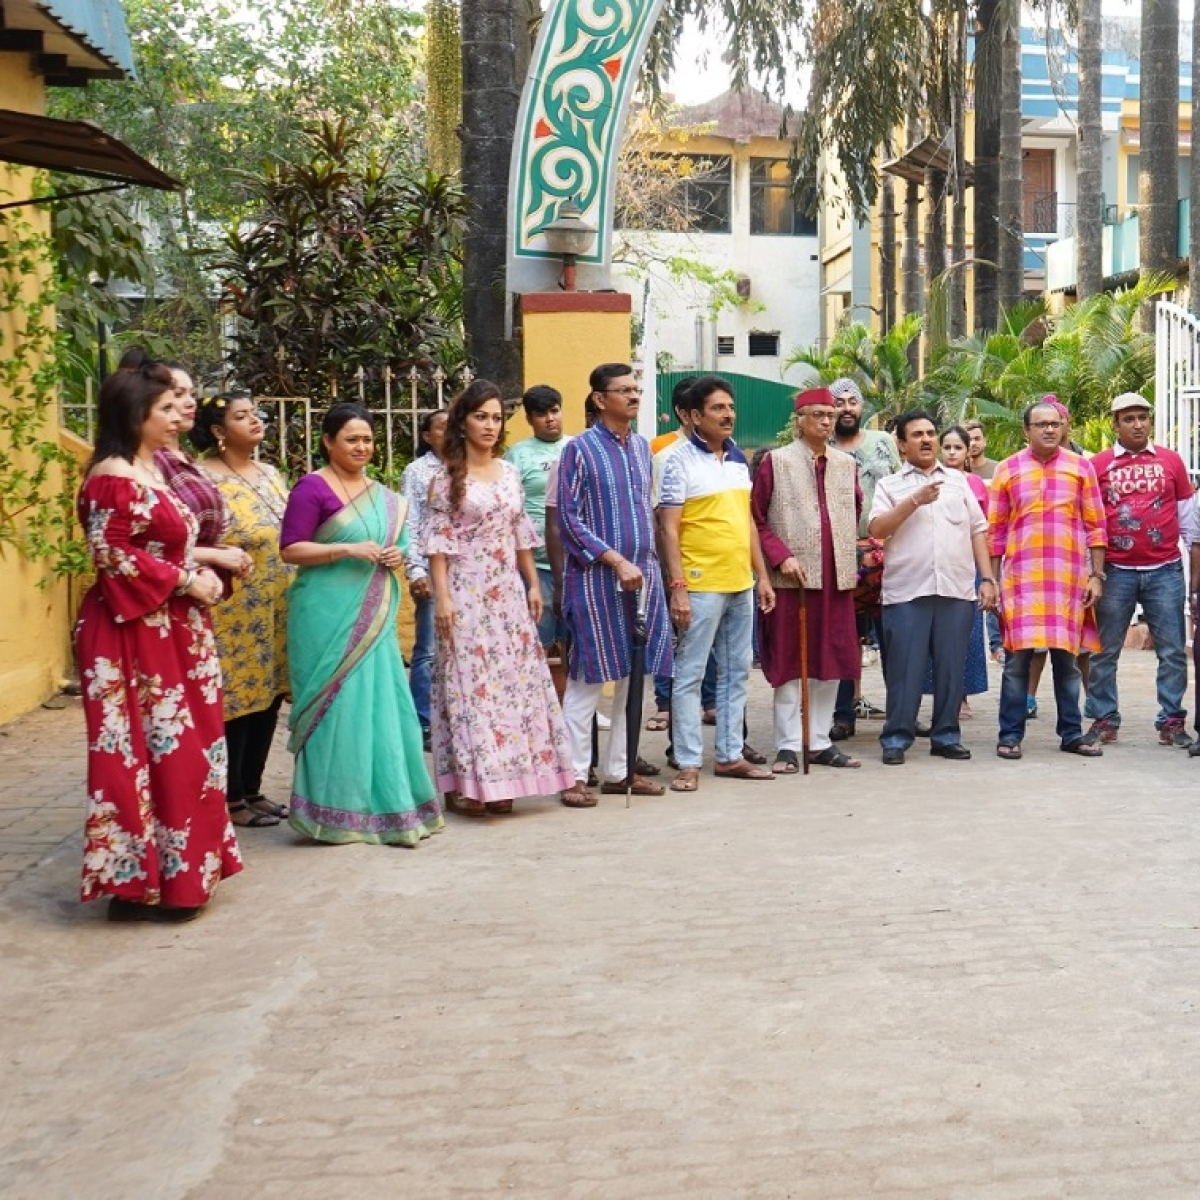 Taarak Mehta Ka Ooltah Chashmah: This is how much Dilip Joshi, Munmun Dutta and other actors charge per episode